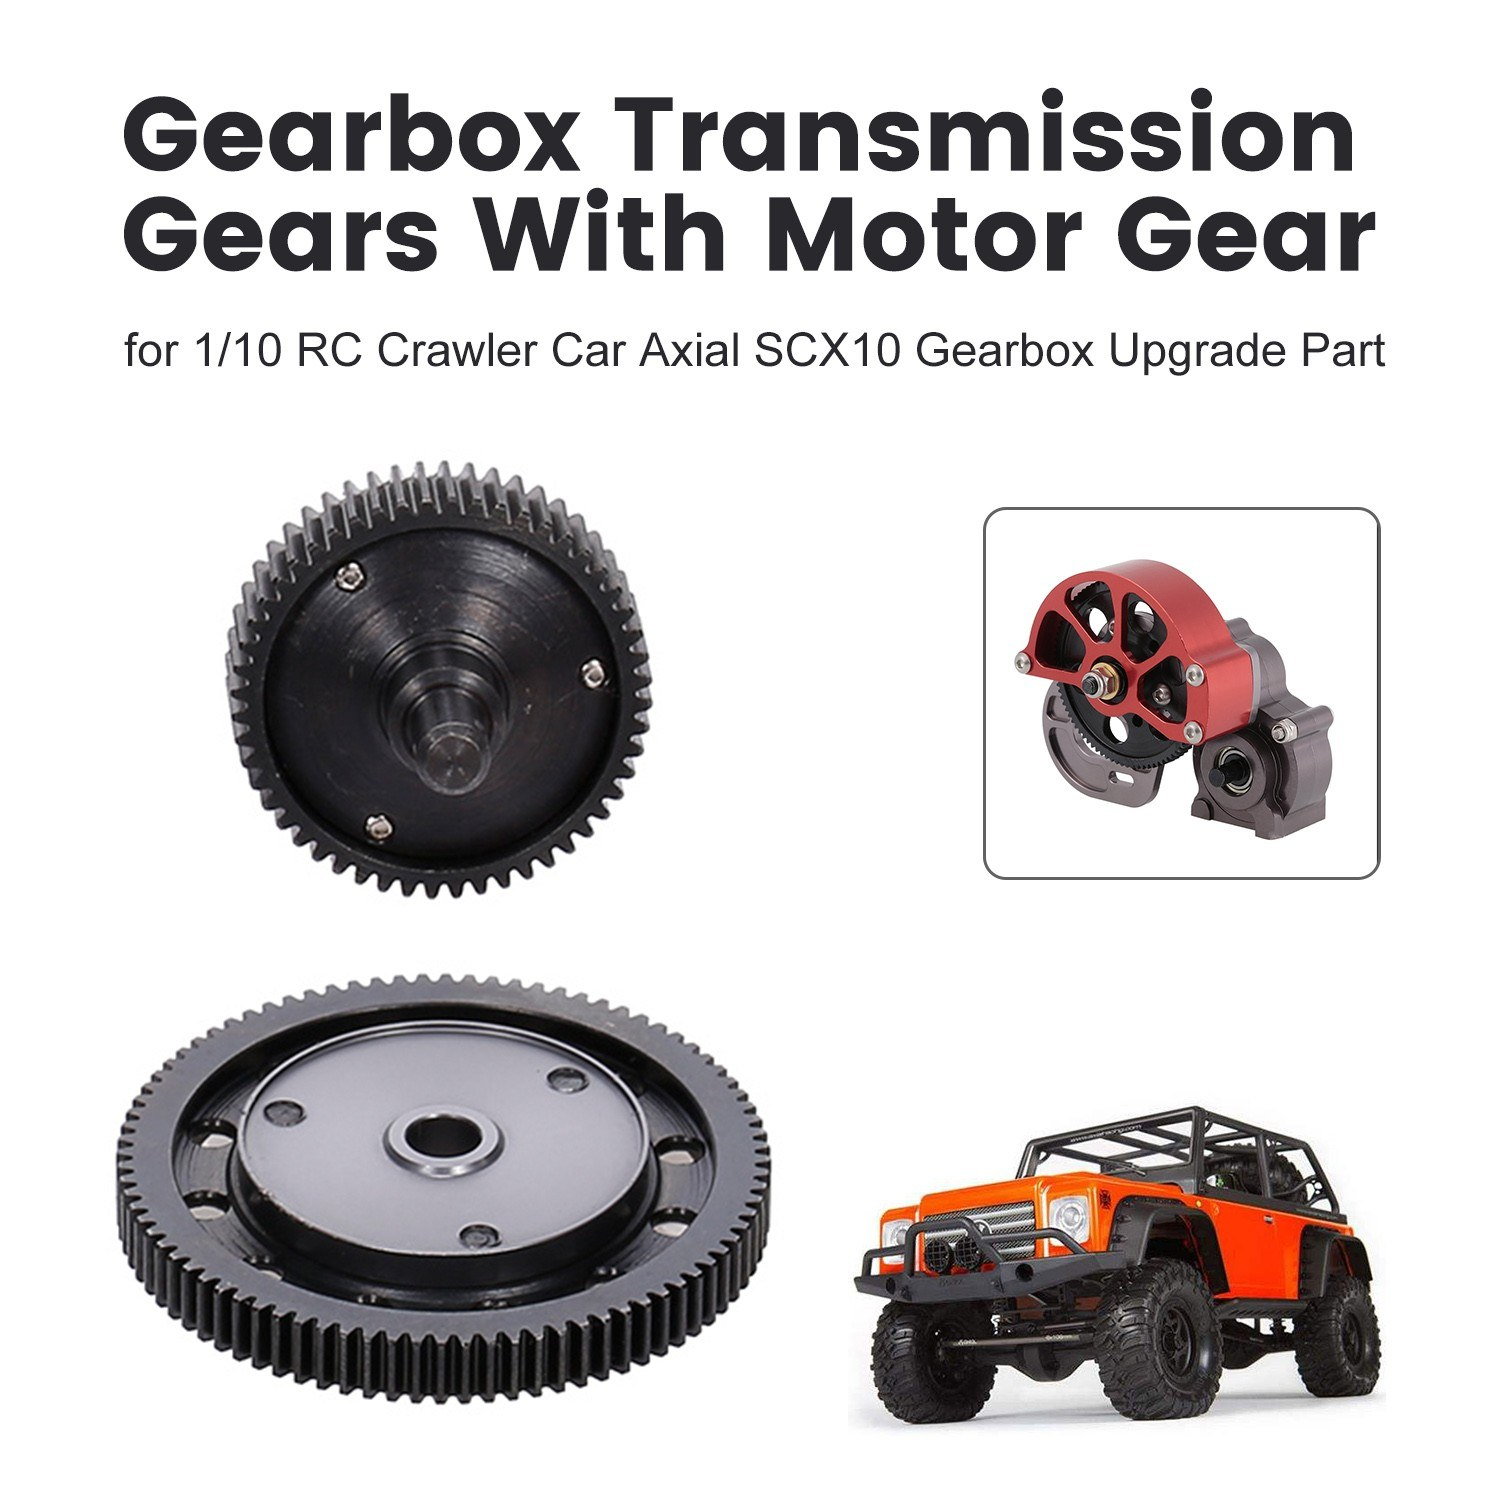 Hardened Steel Gearbox Transmission Gears With Motor Gear for 1/10 RC Crawler Car Axial SCX10 Gearbox Upgrade Part